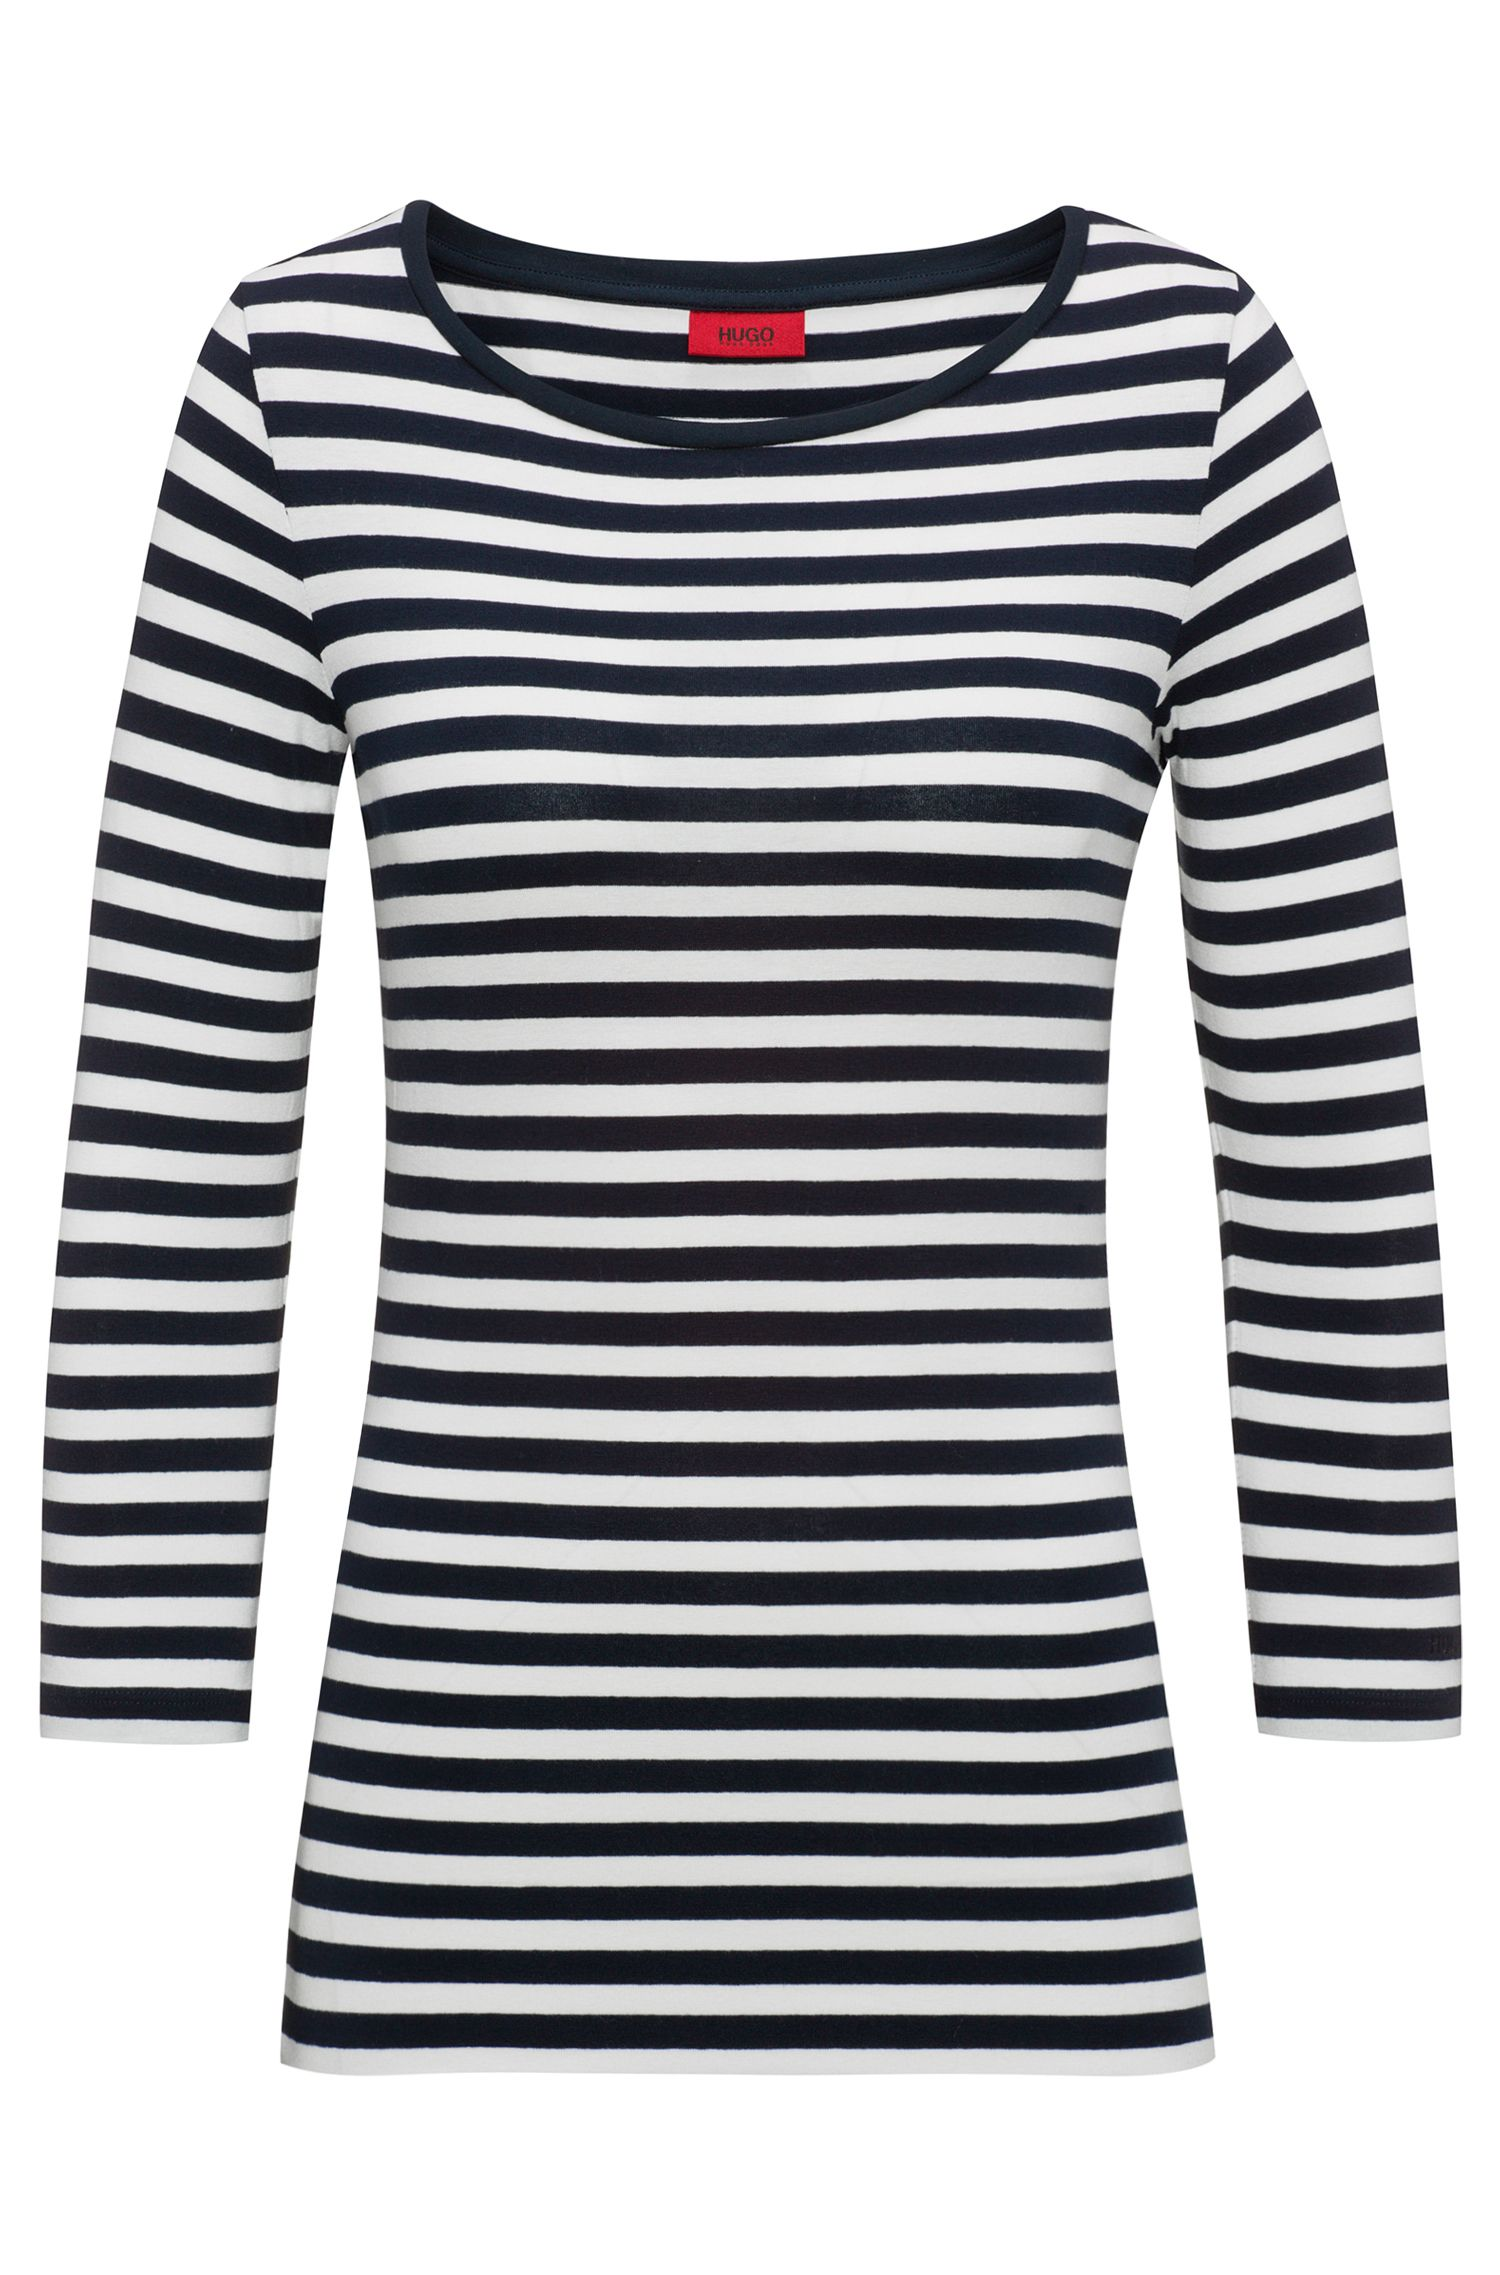 Slim-fit striped jersey T-shirt with boat neckline